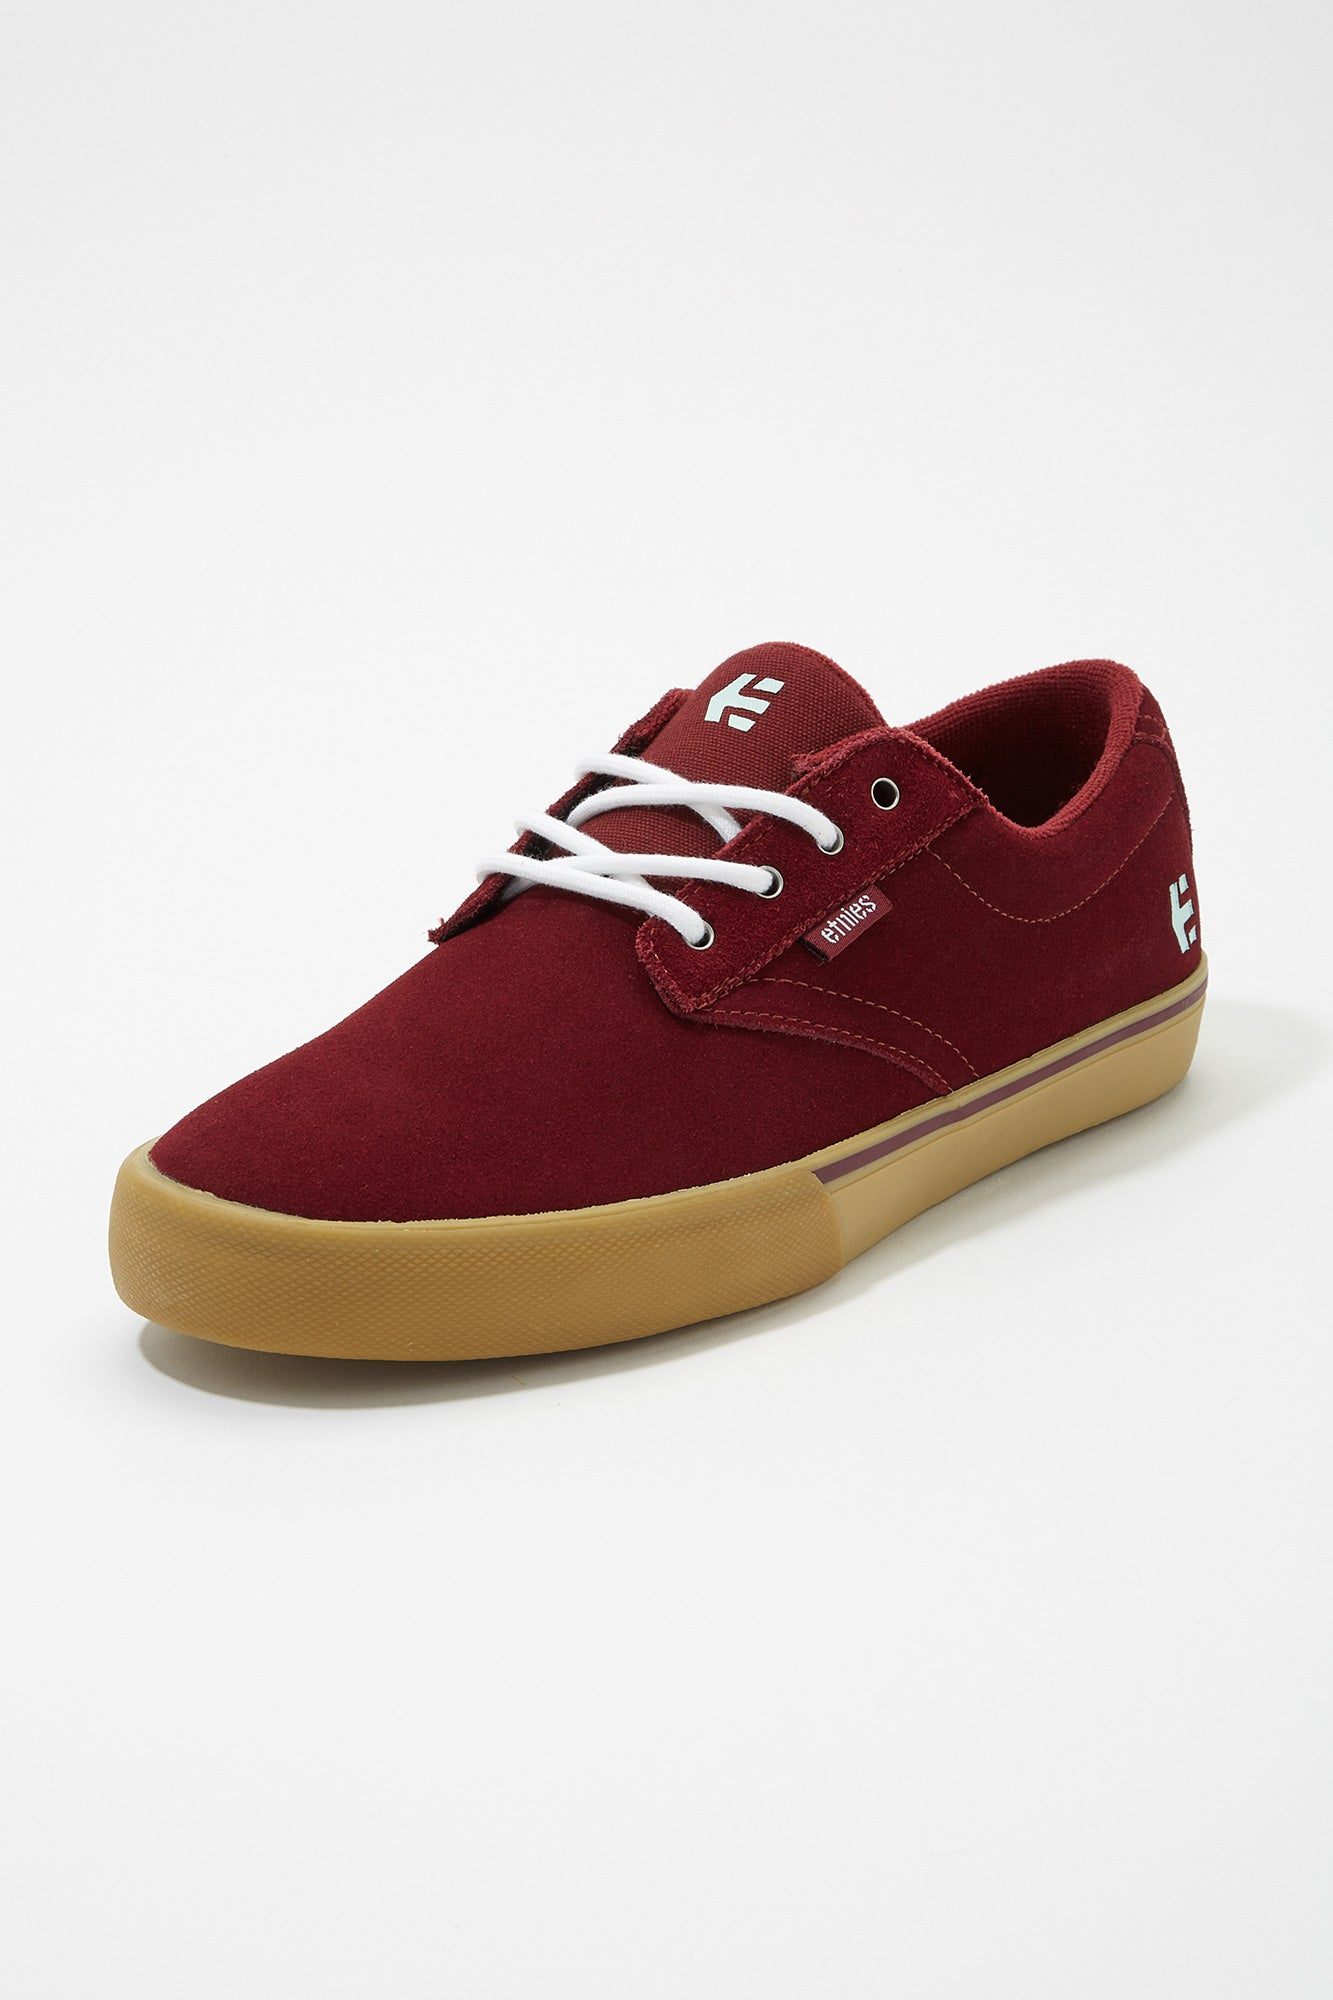 bb53b5728b282e Etnies Mens Burgundy Jameson Vulc Shoes